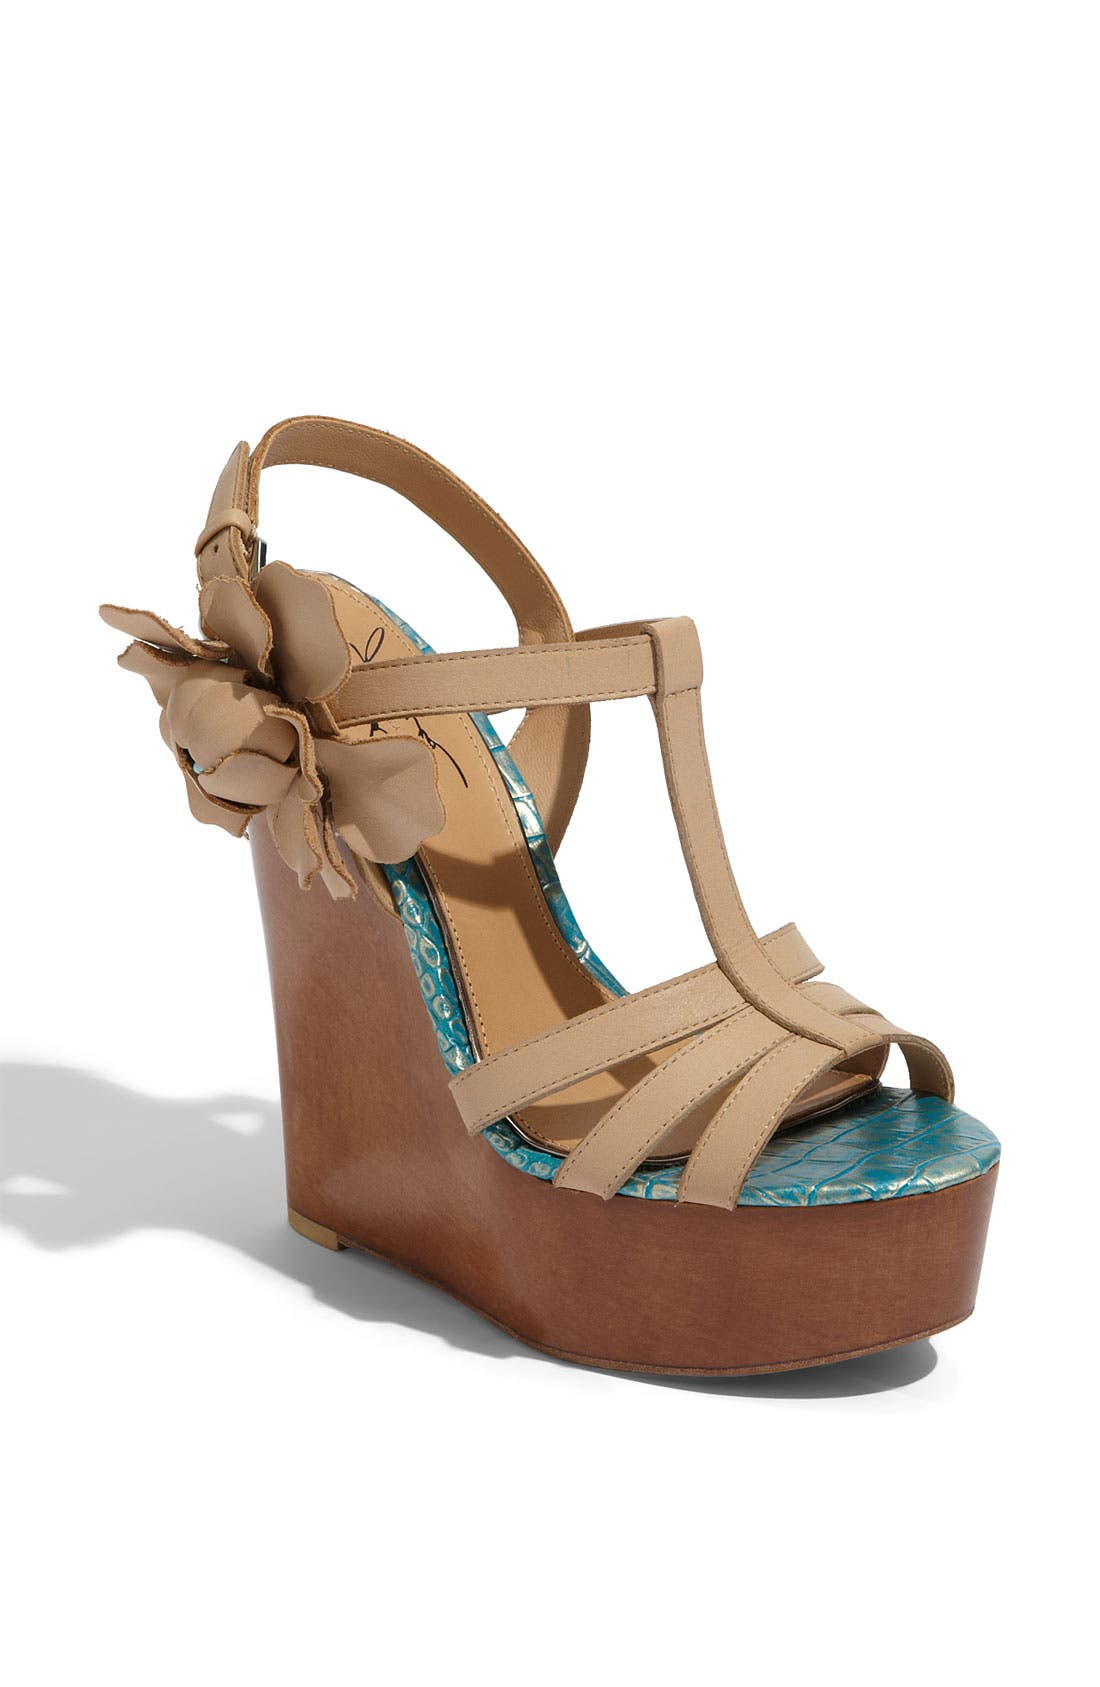 Main Image - Mark & James by Badgley Mischka 'Maiko' T-Strap Sandal